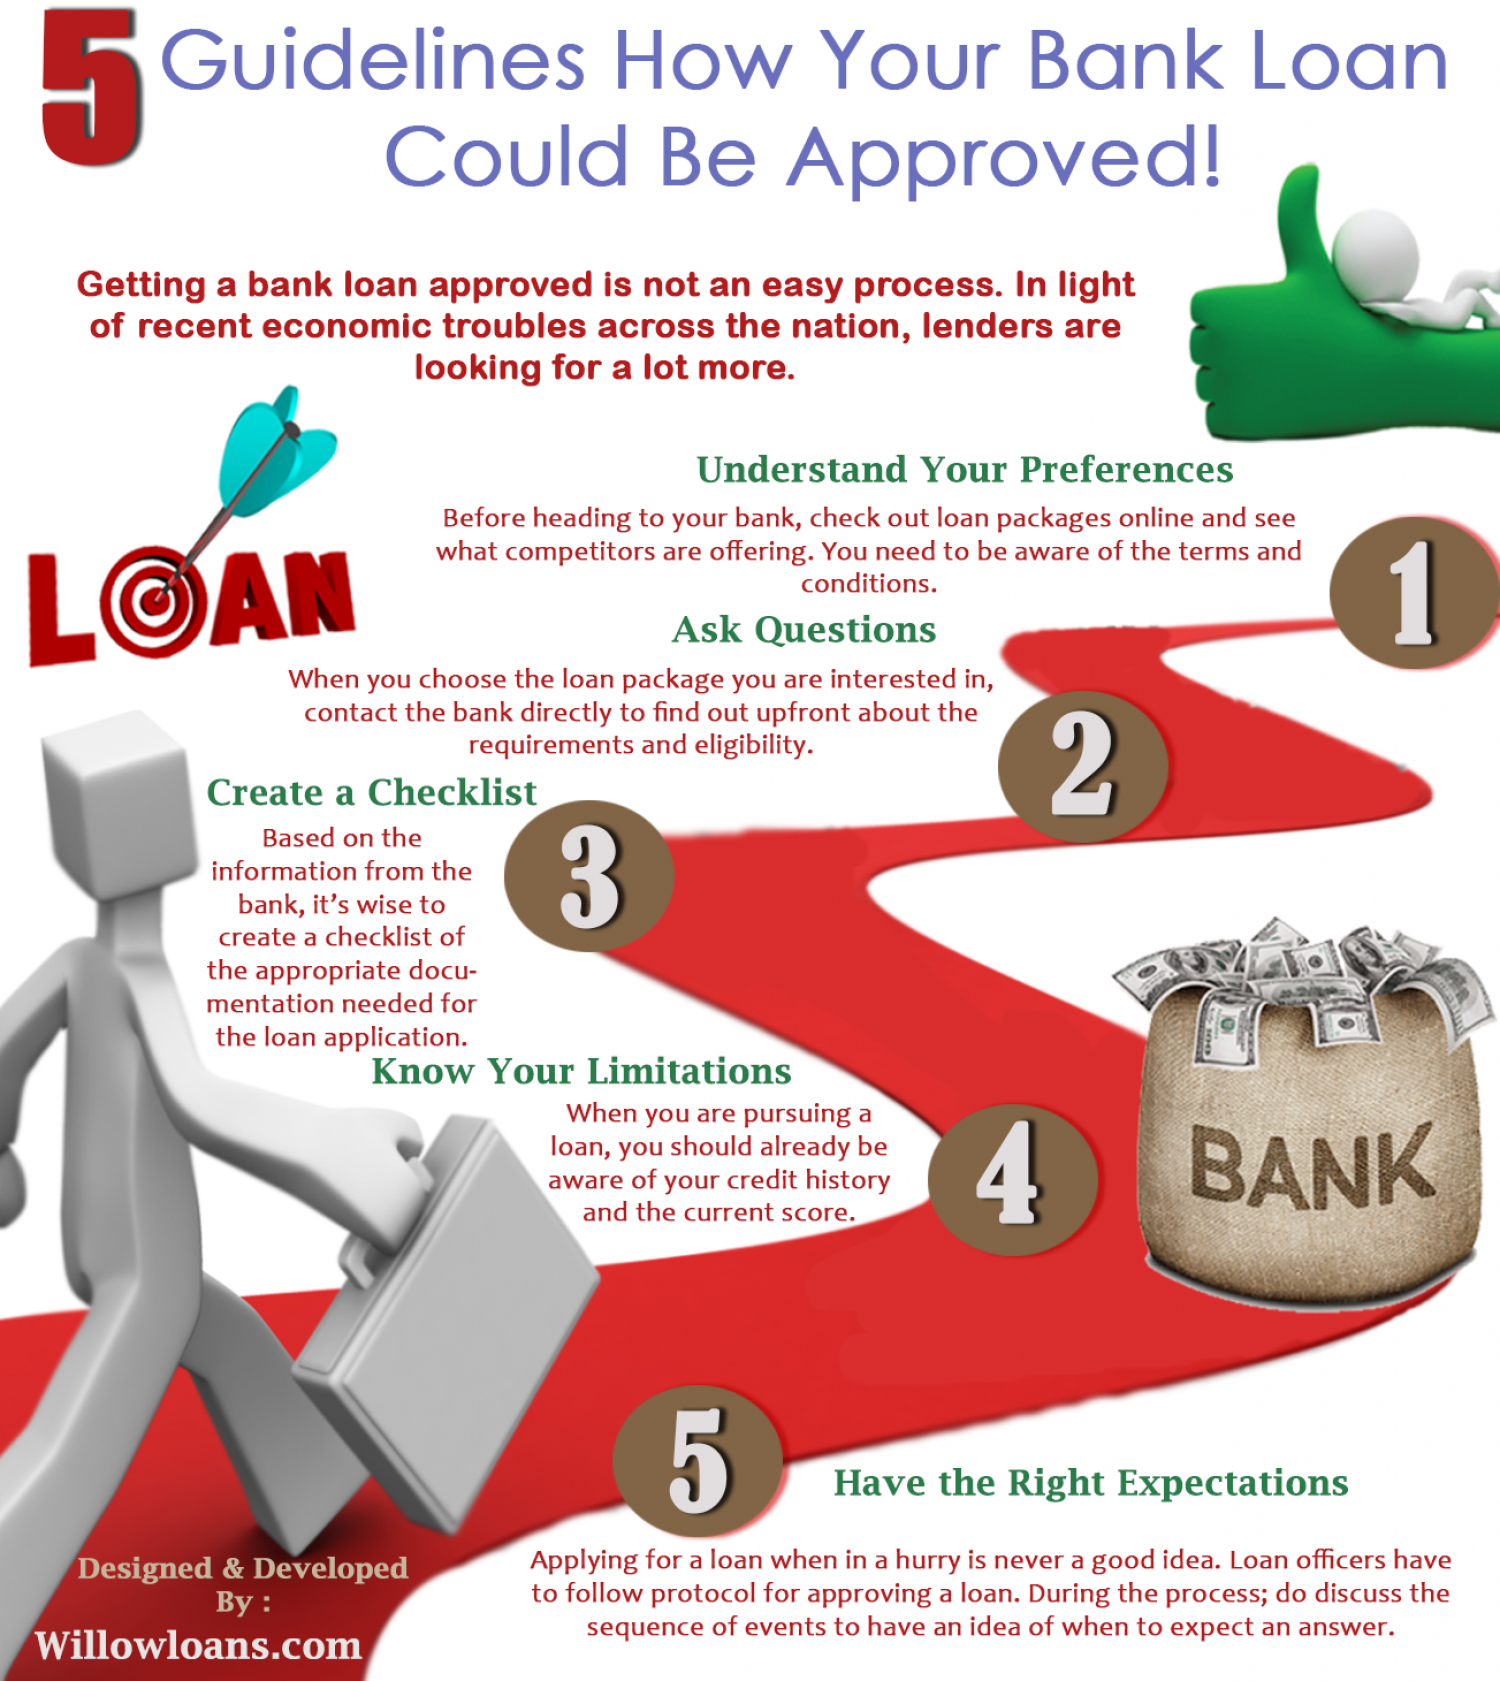 5 Guidelines How Your Bank Loan Could Be Approved! Infographic